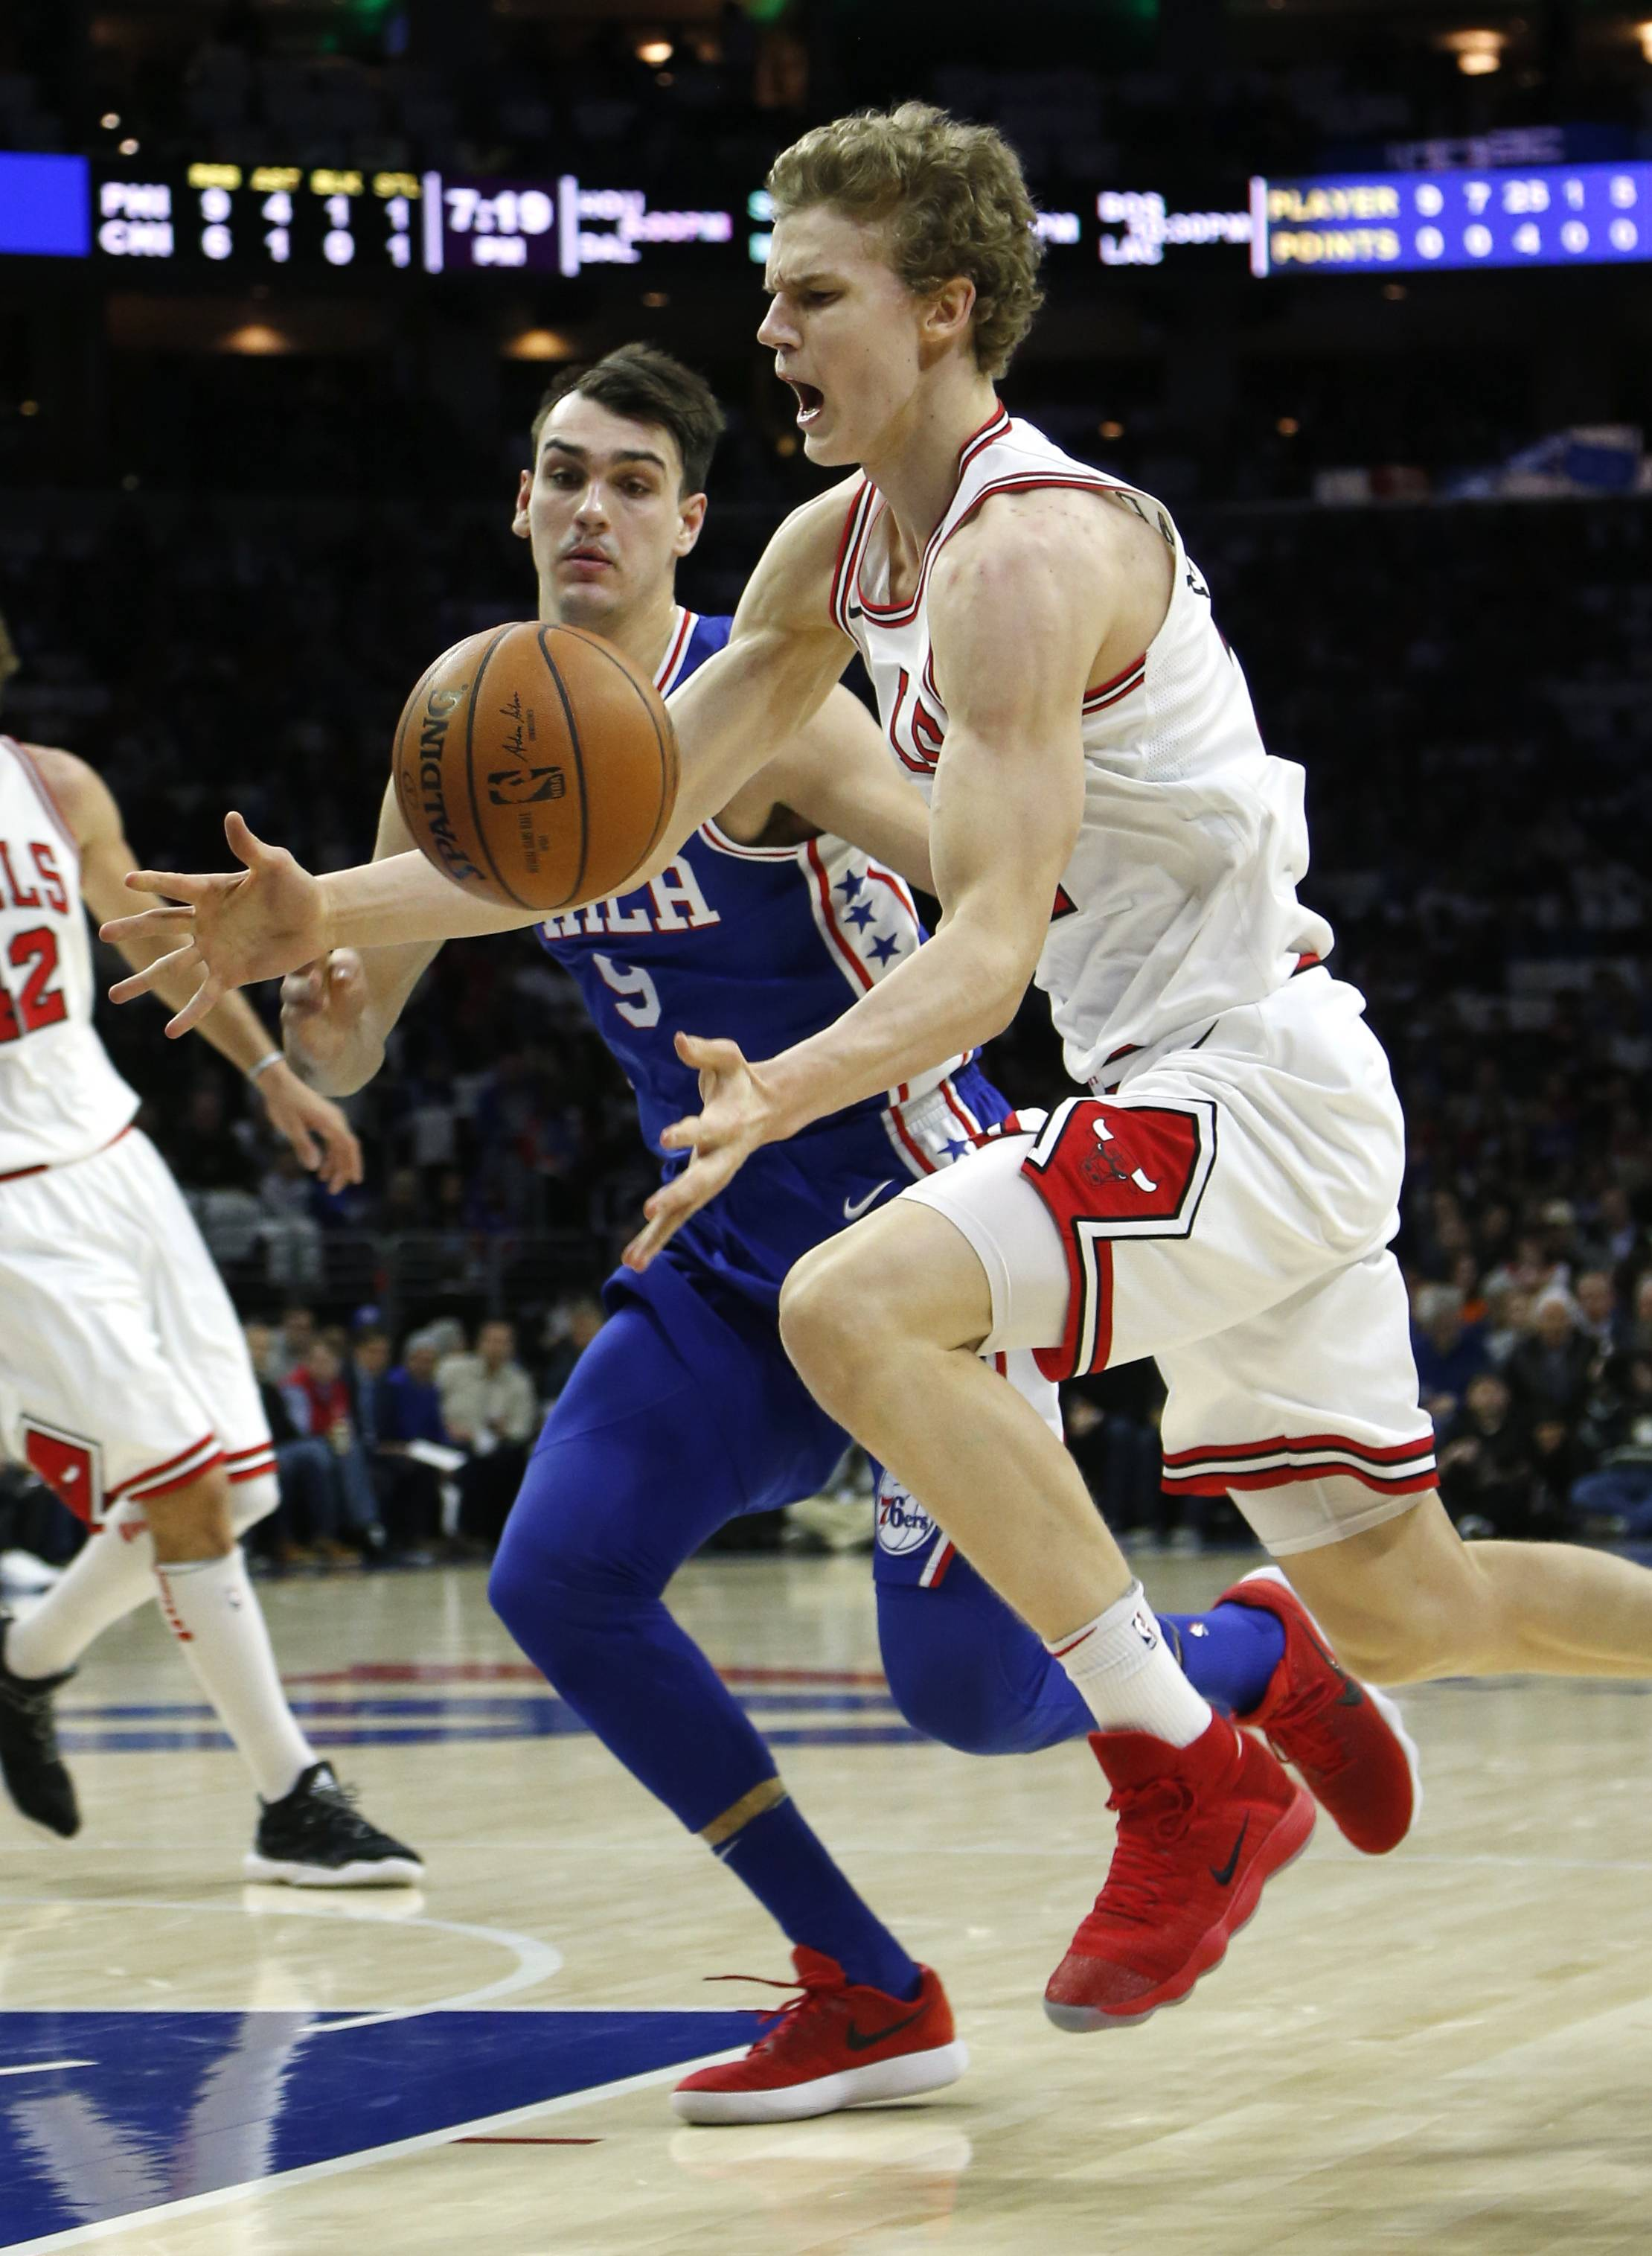 Chicago Bulls' recent slump helps illustrate Dunn's value